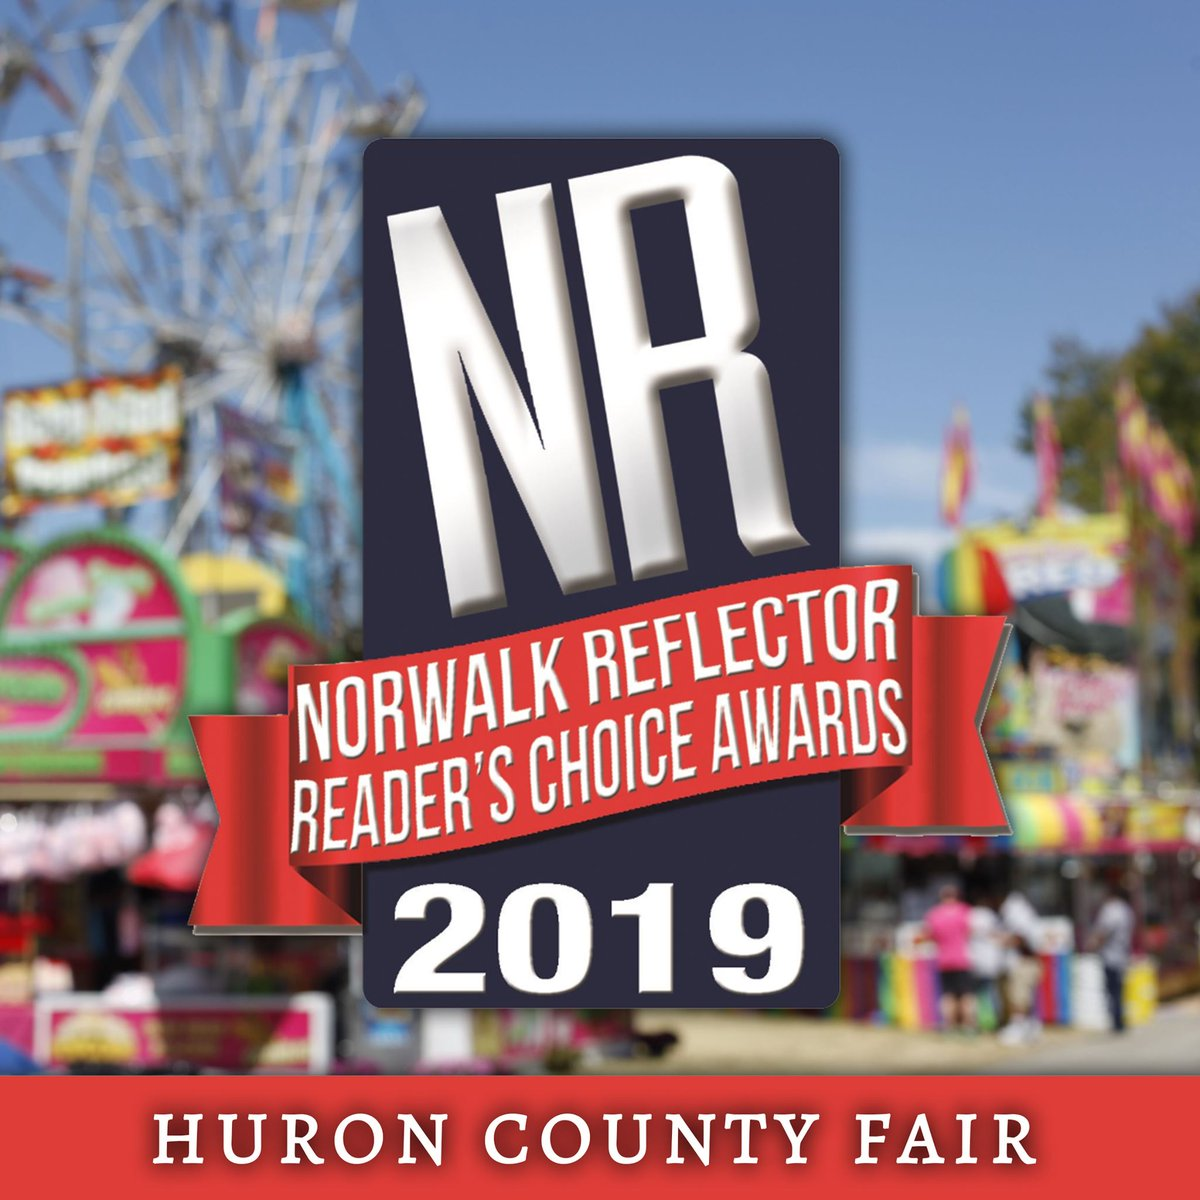 Huron County Fair Schedule 2020.Huron County Fair Ohio Huroncountyfair Twitter